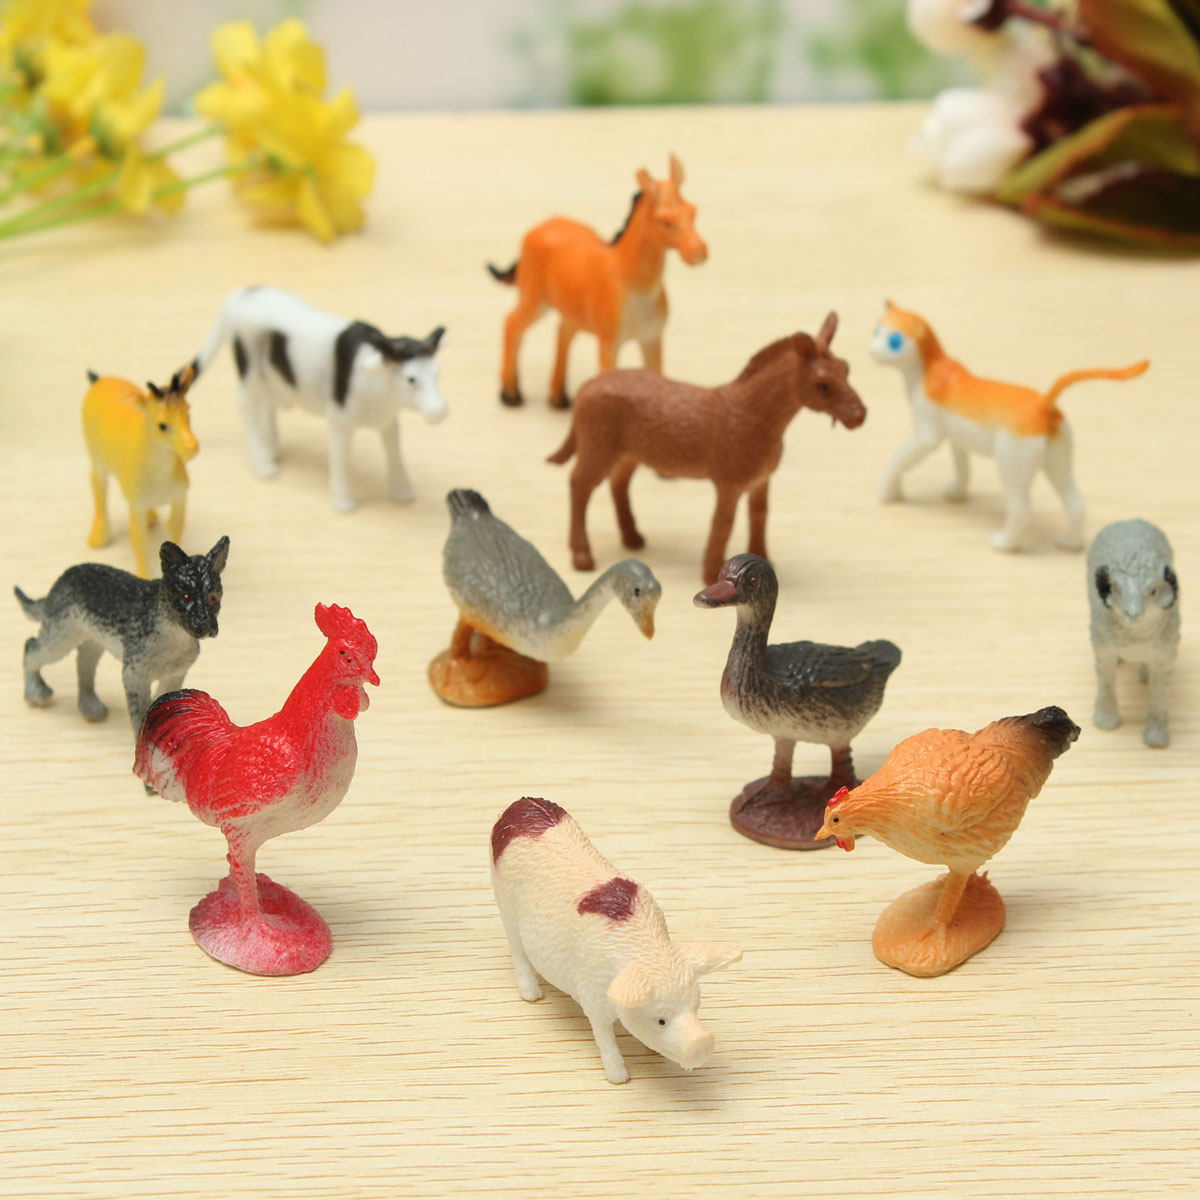 Toys For Animals : Pcs plastic farm yard figure pig cow horse dog animal